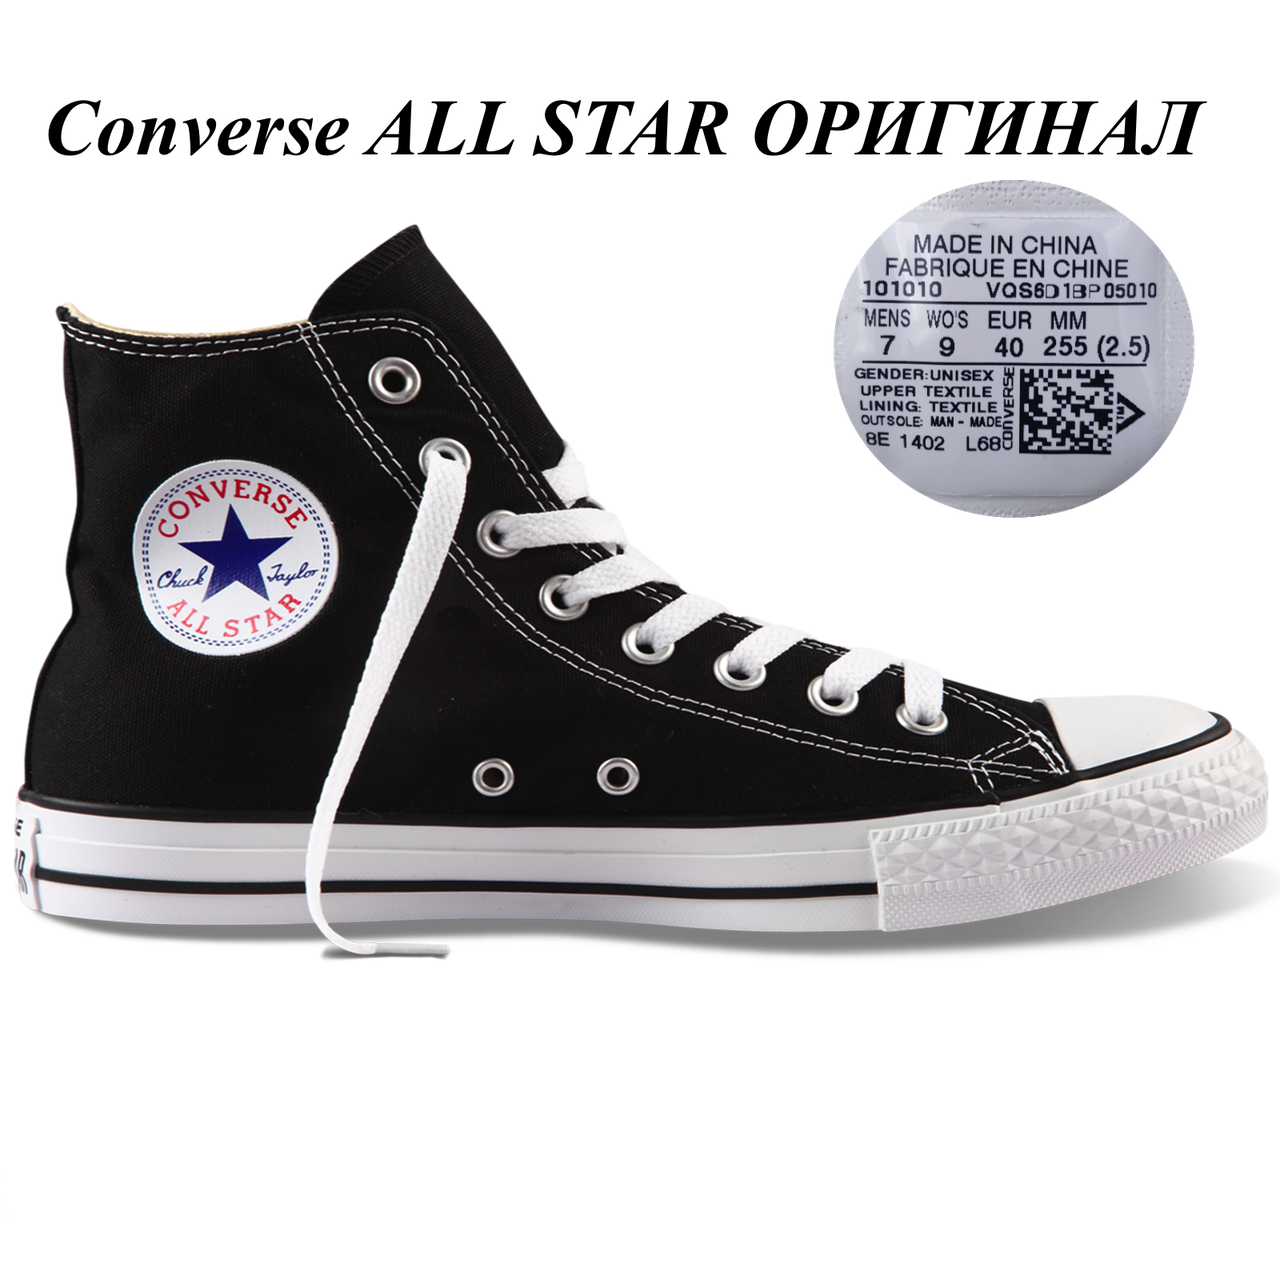 Оригинальные кеды Converse All Star Chuck Taylor, black